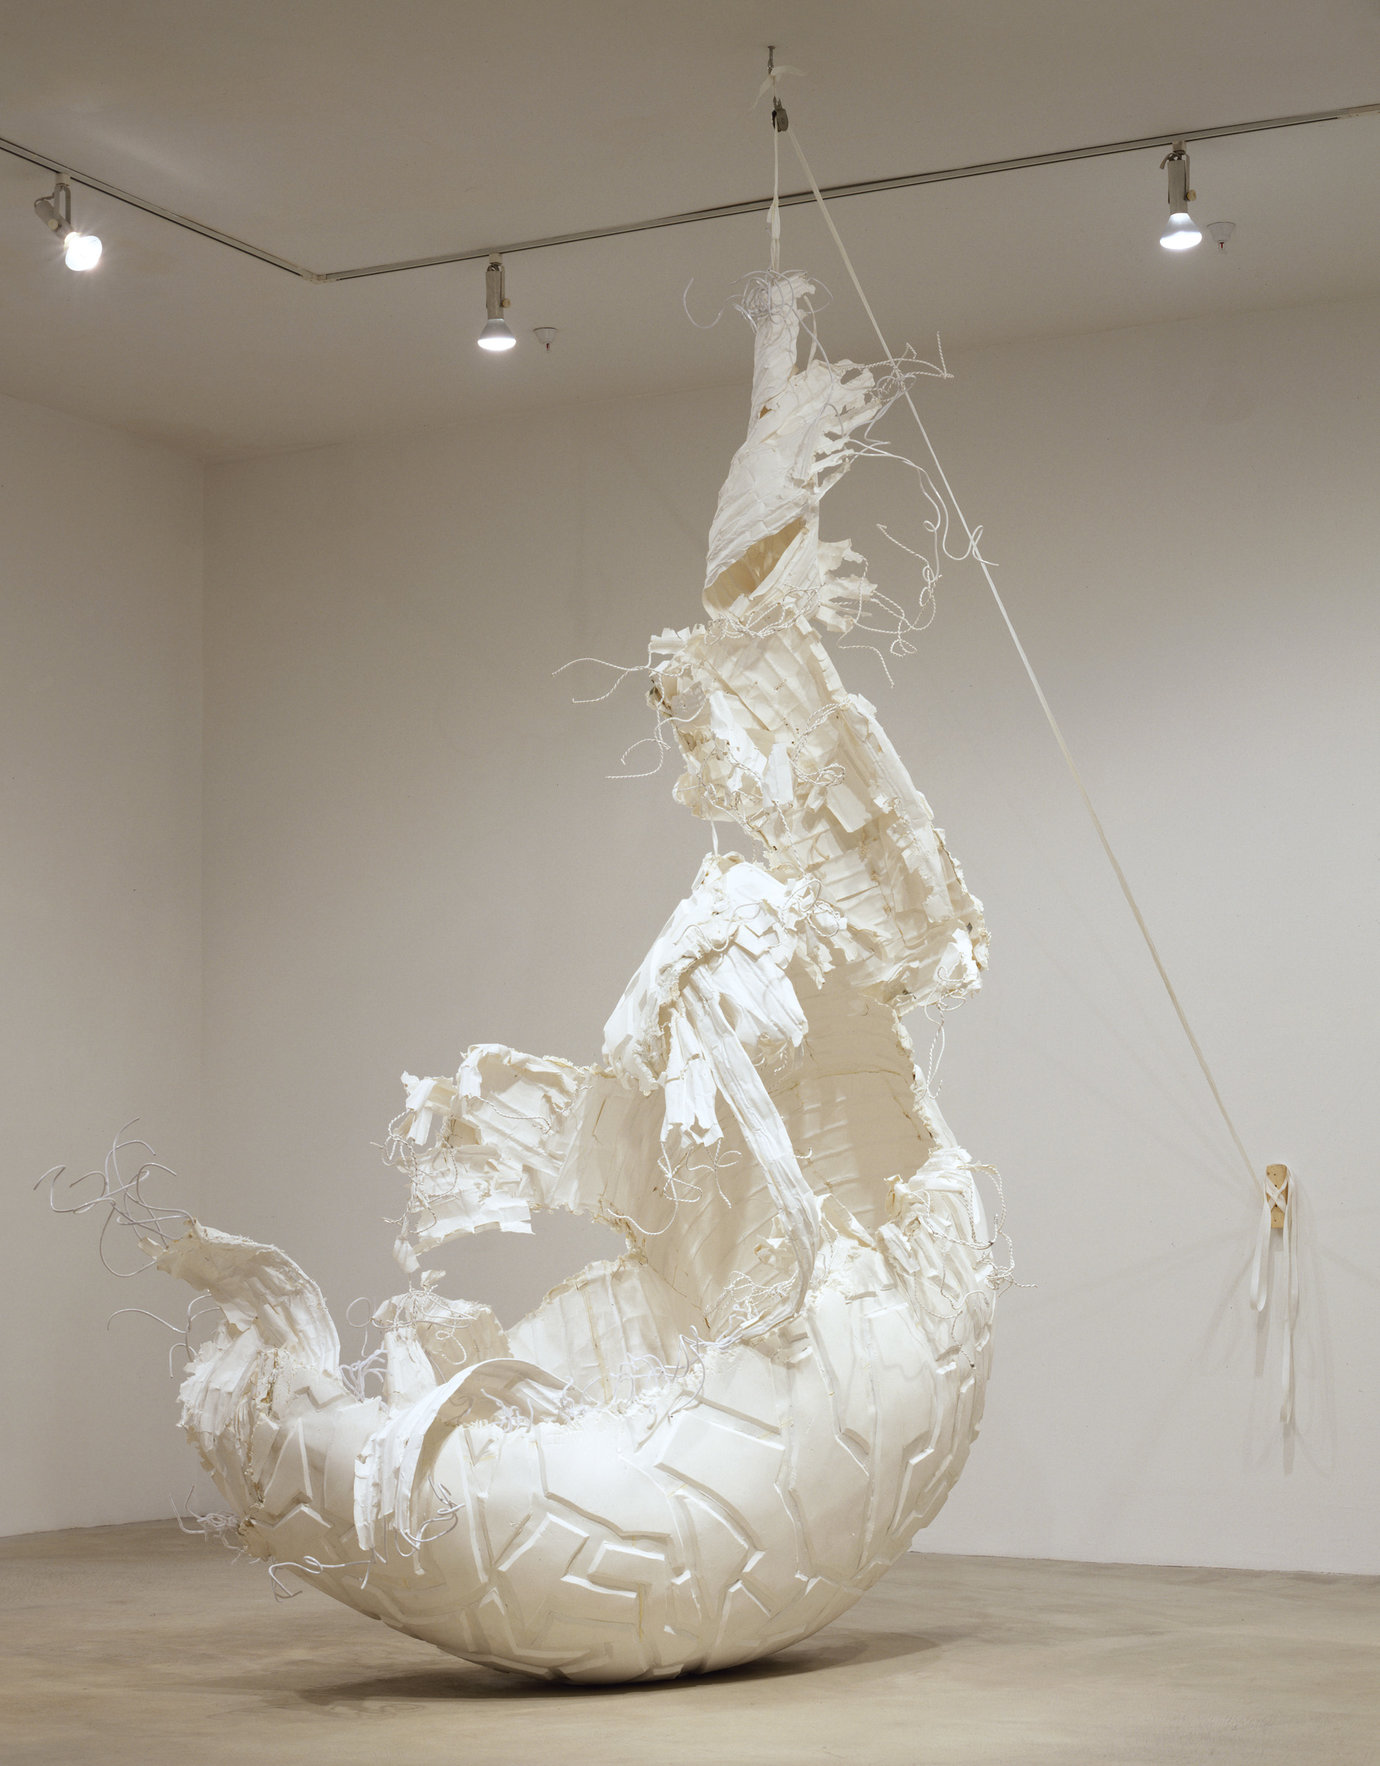 , 2004. Paper, wire, string, foam and rubber, 13' x 9' x 5' (396.2 cm x 274.3 cm x 152.4 cm).